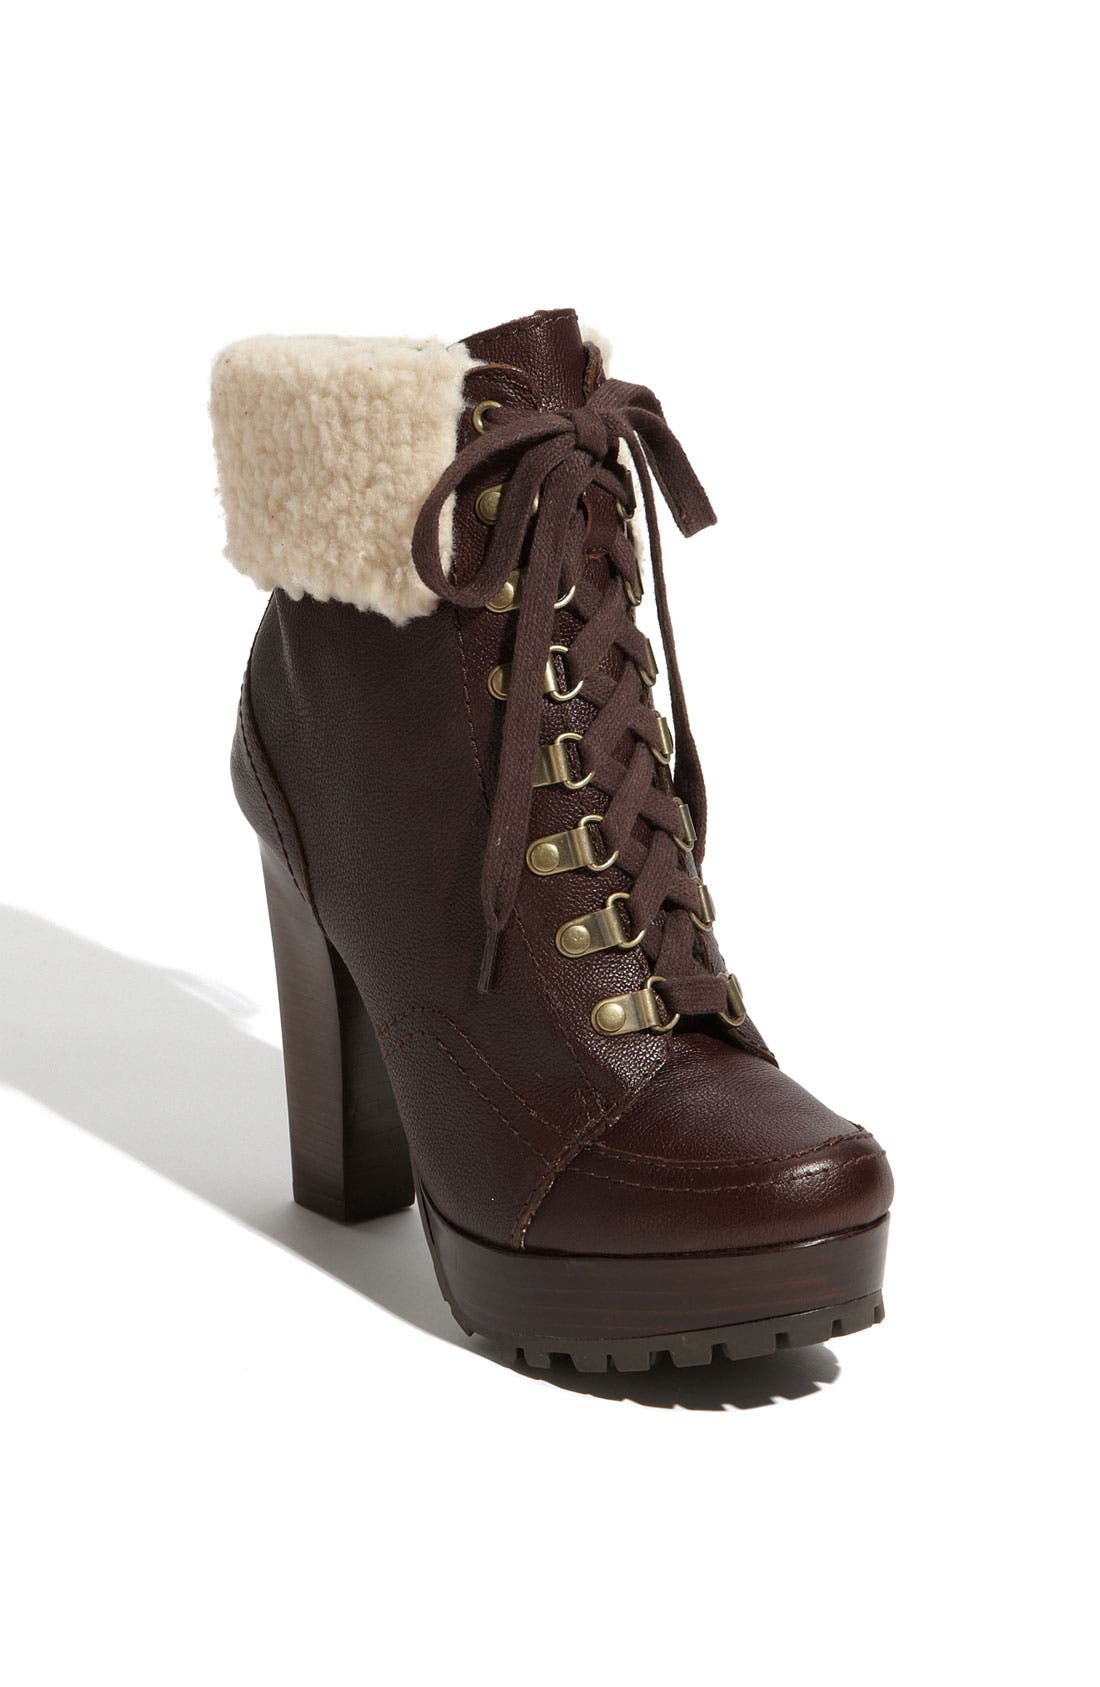 Main Image - BP. 'Search' Lace-Up Bootie